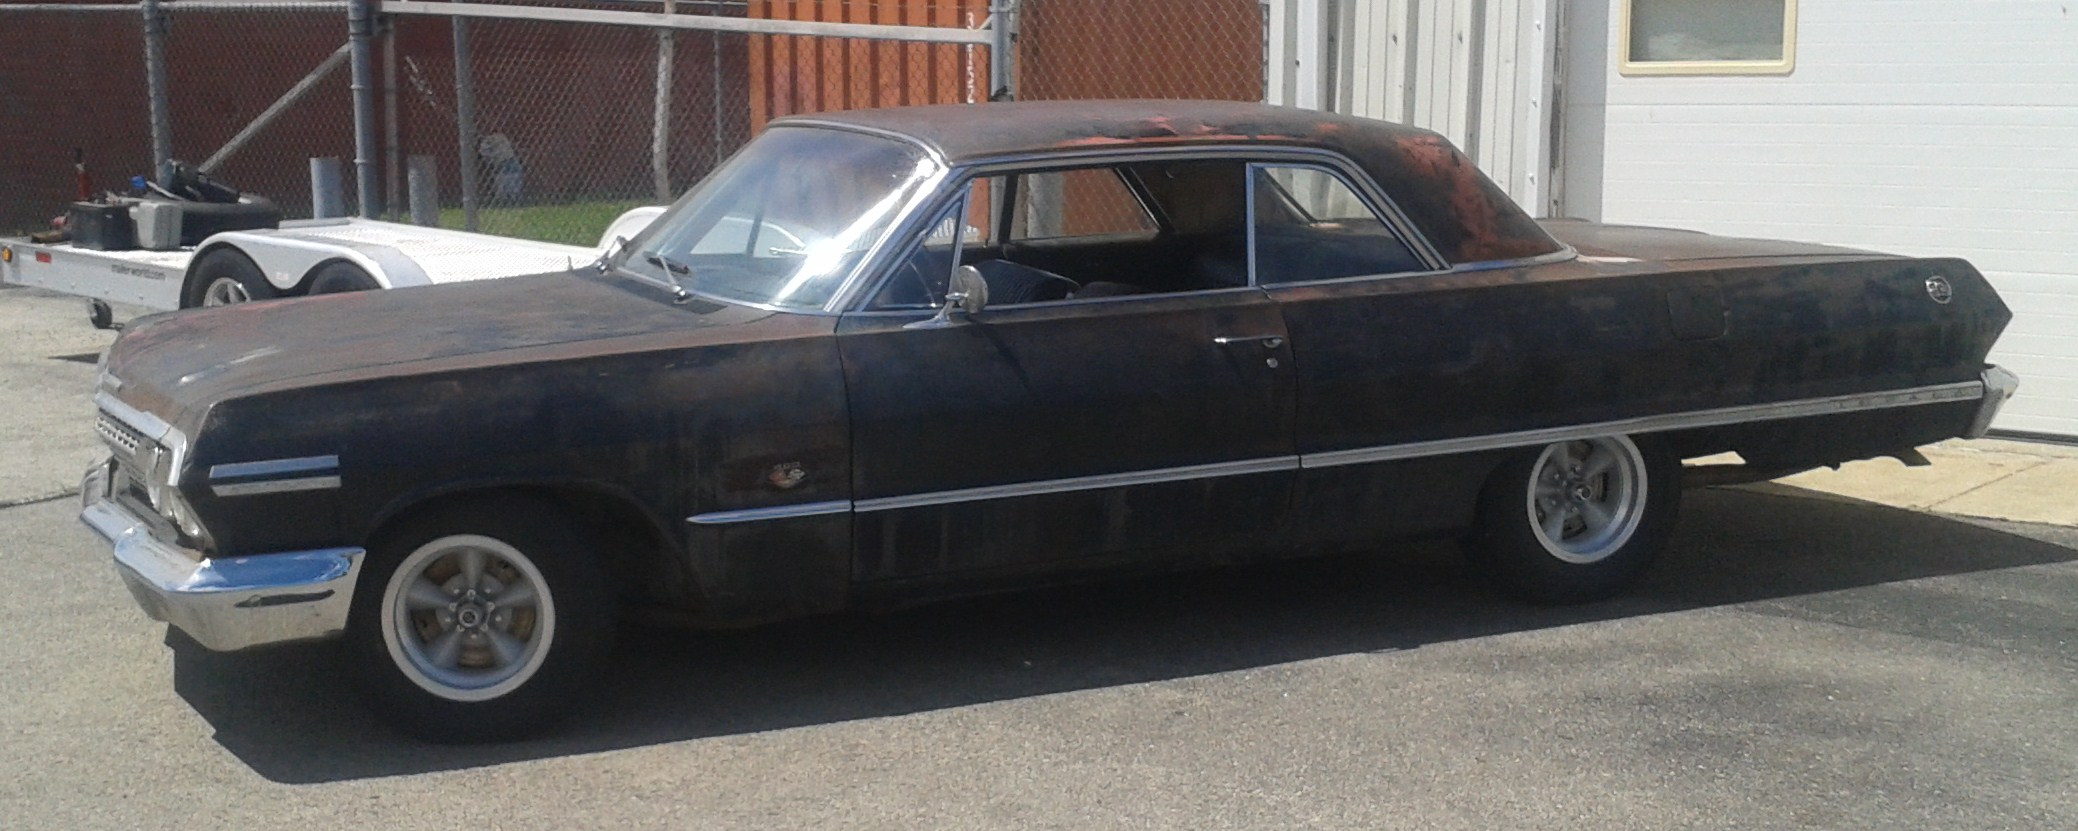 All Chevy 63 chevy 409 : 1963 IMPALA SS 409 4 SPEED | The H.A.M.B.